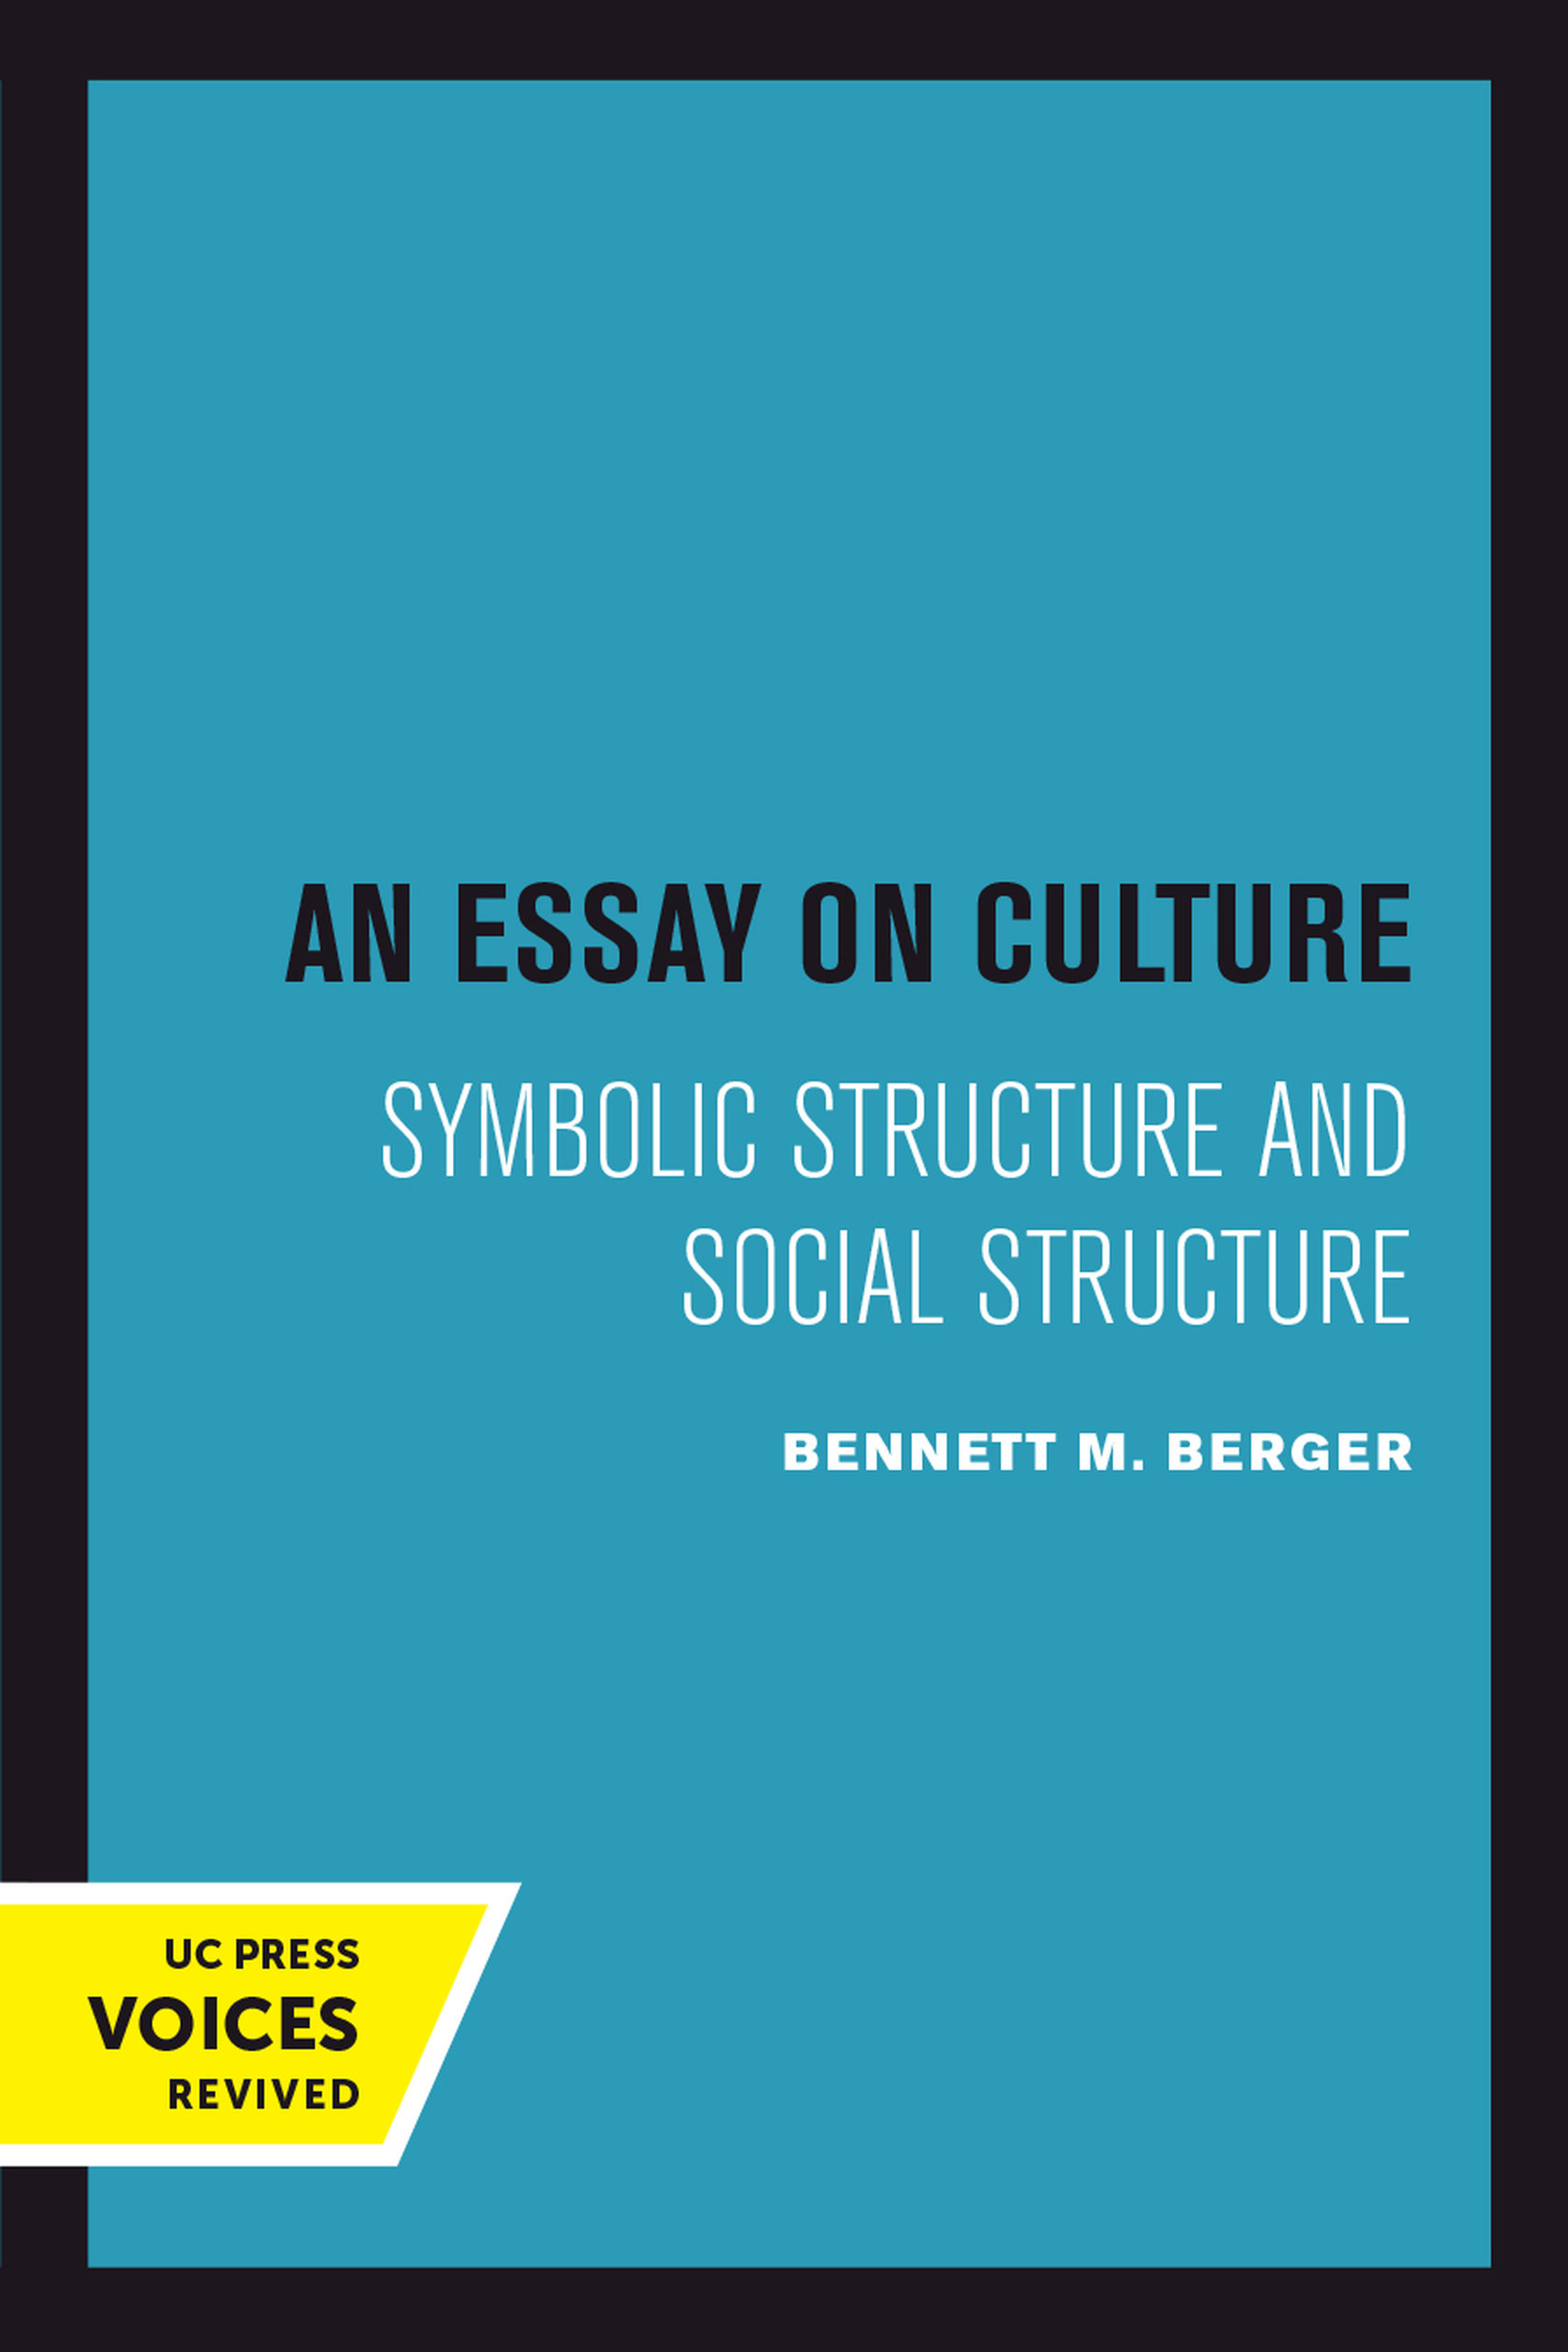 What Is A Synthesis Essay Download Cover Image   Create A Flier For This Title  What Is The Thesis Statement In The Essay also English Essays For Kids An Essay On Culture By Bennett M Berger  Paperback  University Of  High School Dropout Essay